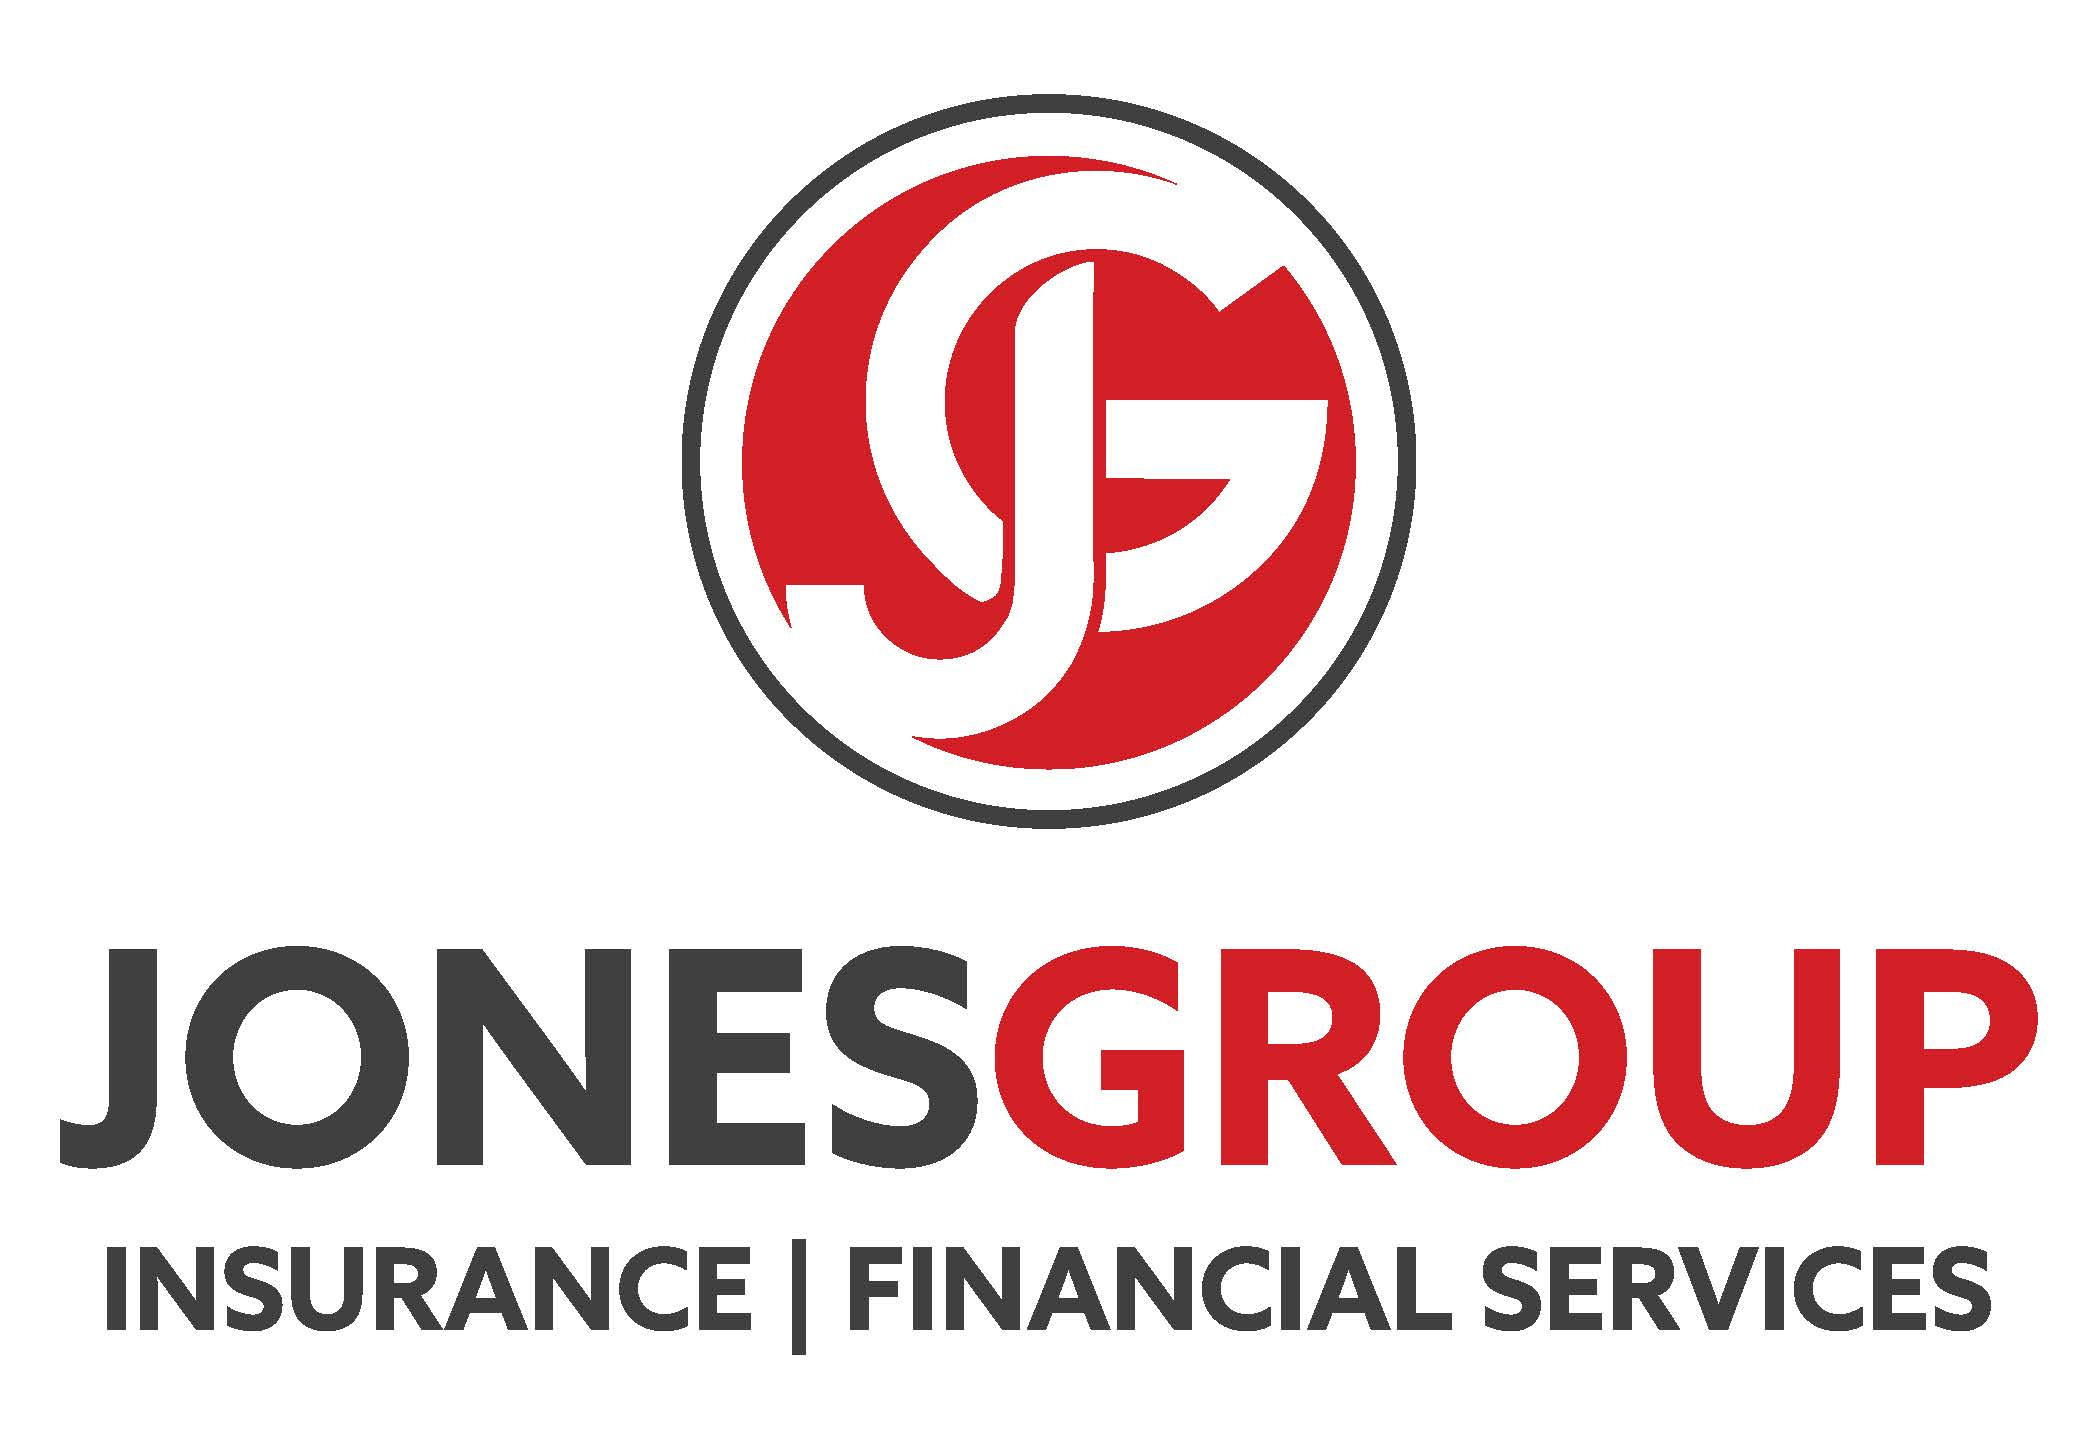 Jones Group Insurance | Financial Services